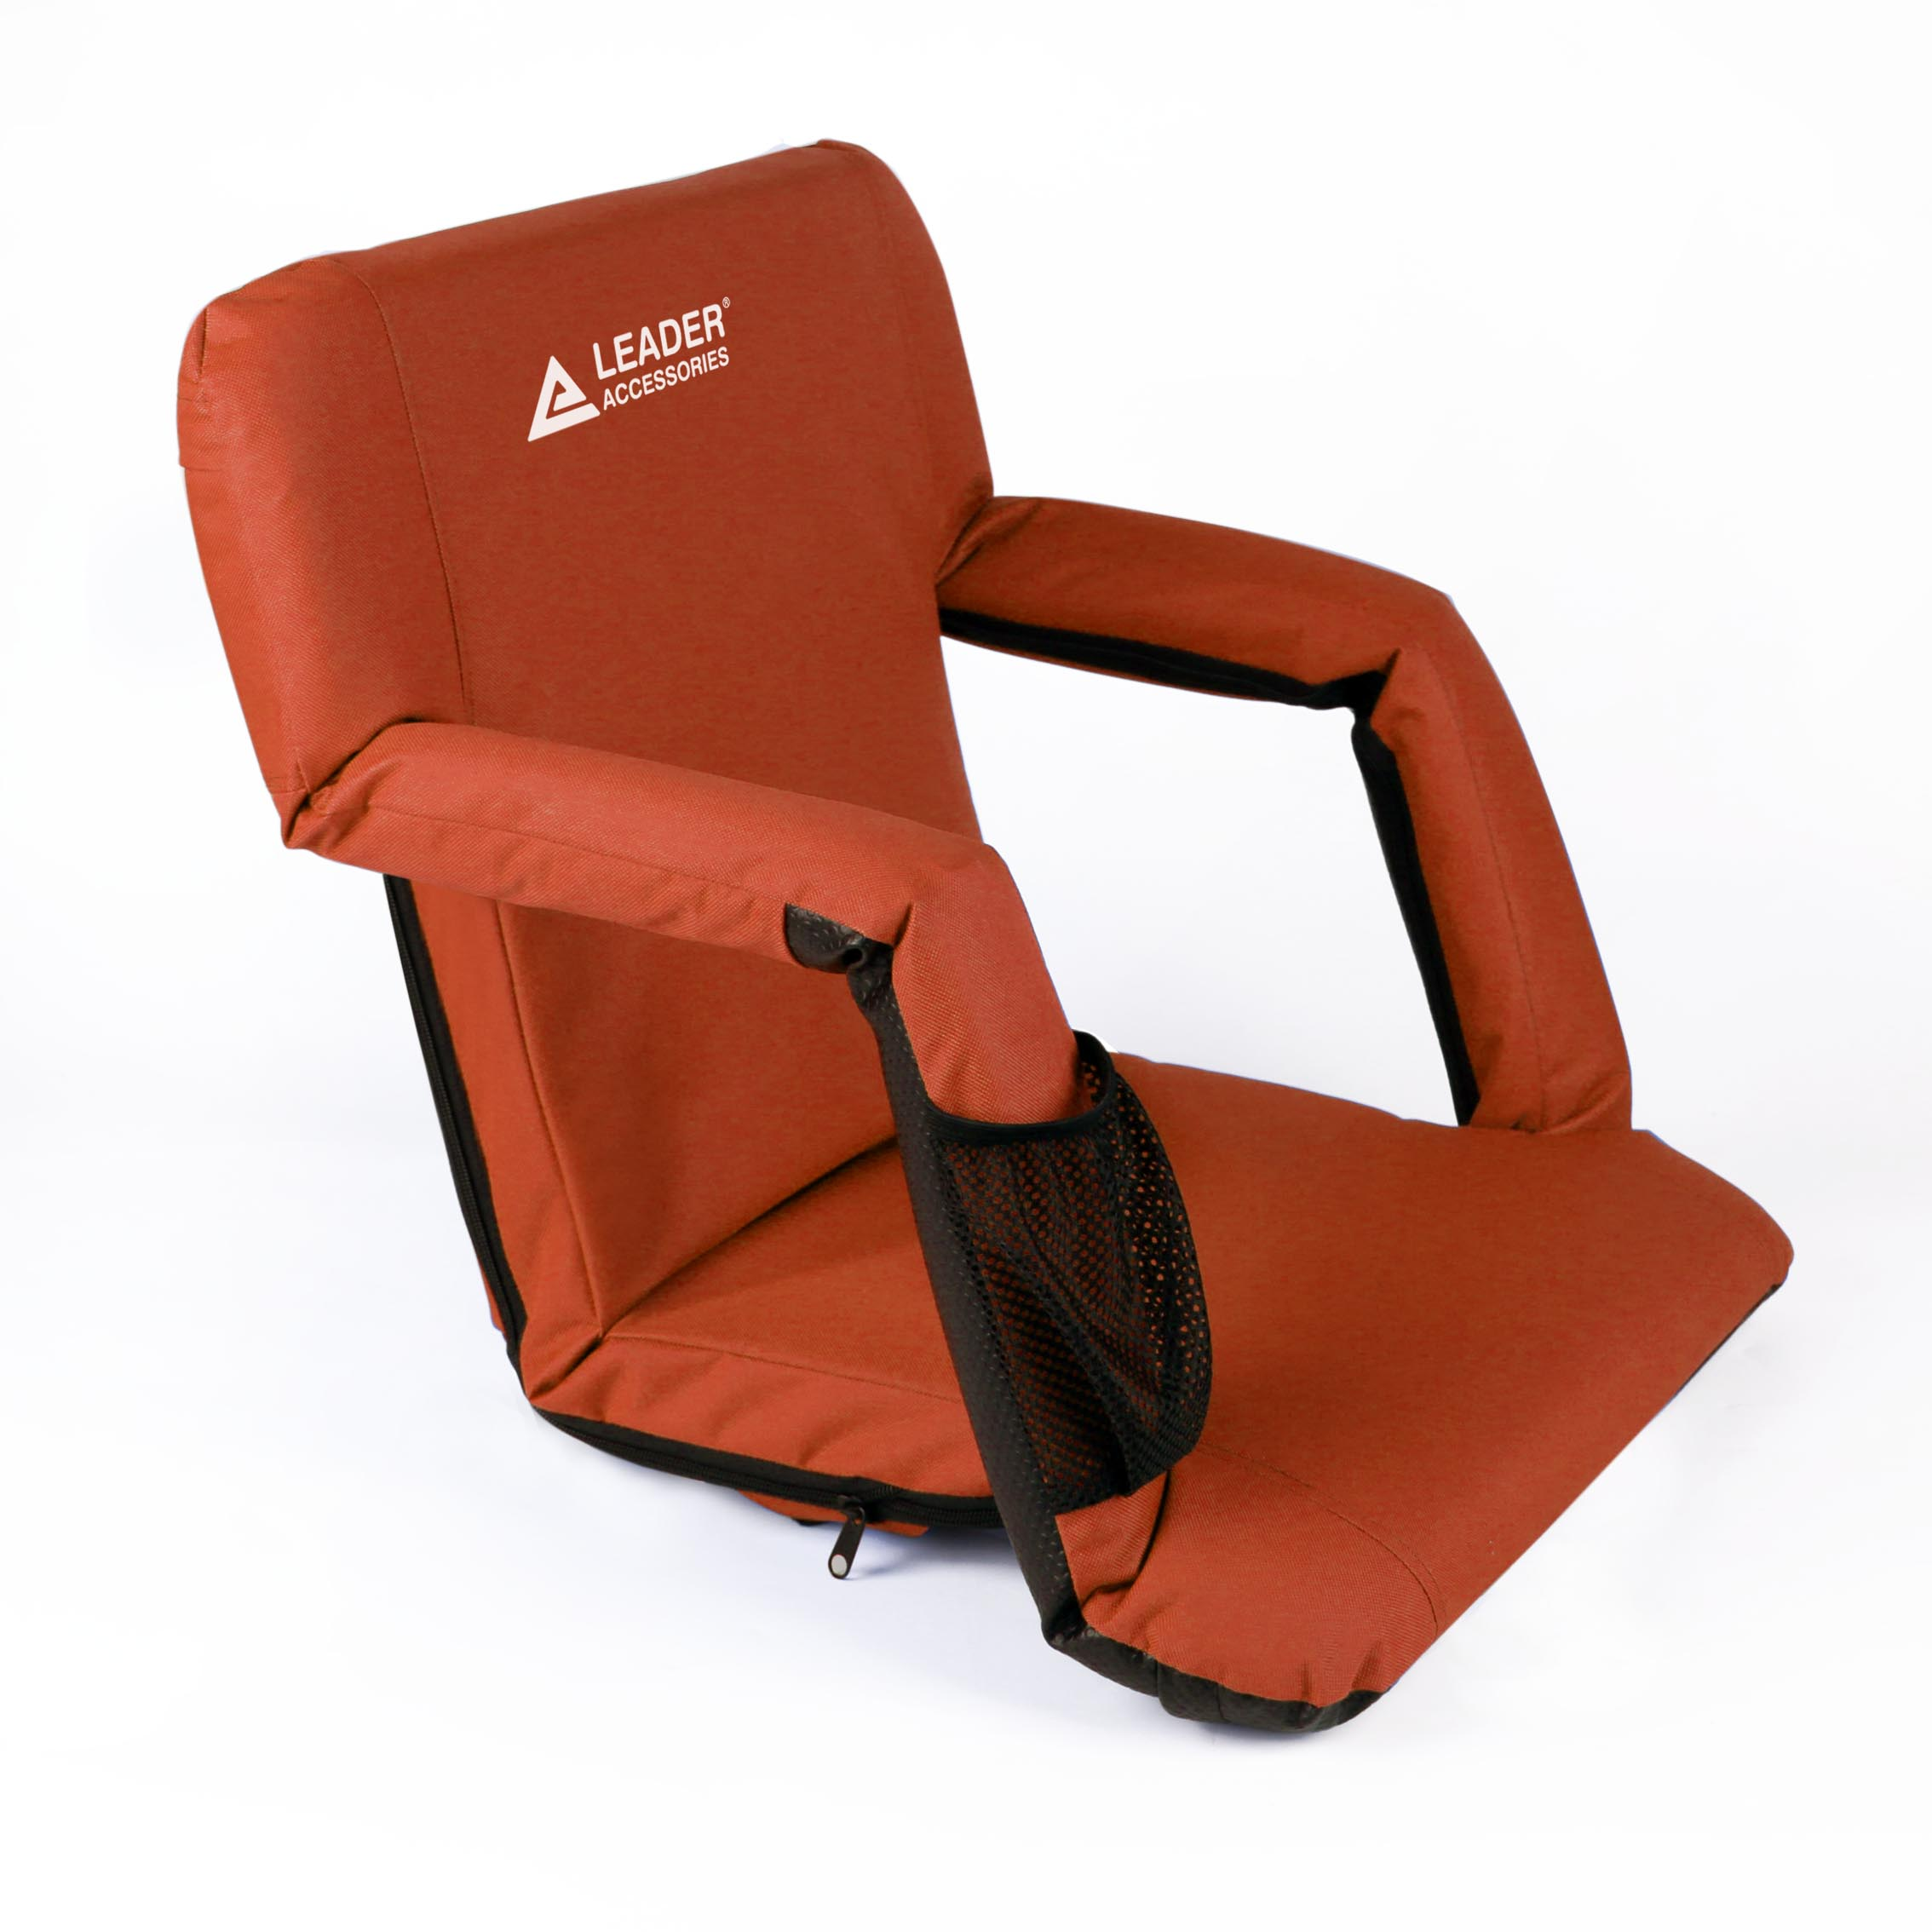 Leader Accessories Stadium Seat Cozy Portable Reclining Seat Folding Bleacher or Benche Chair with Arm rest